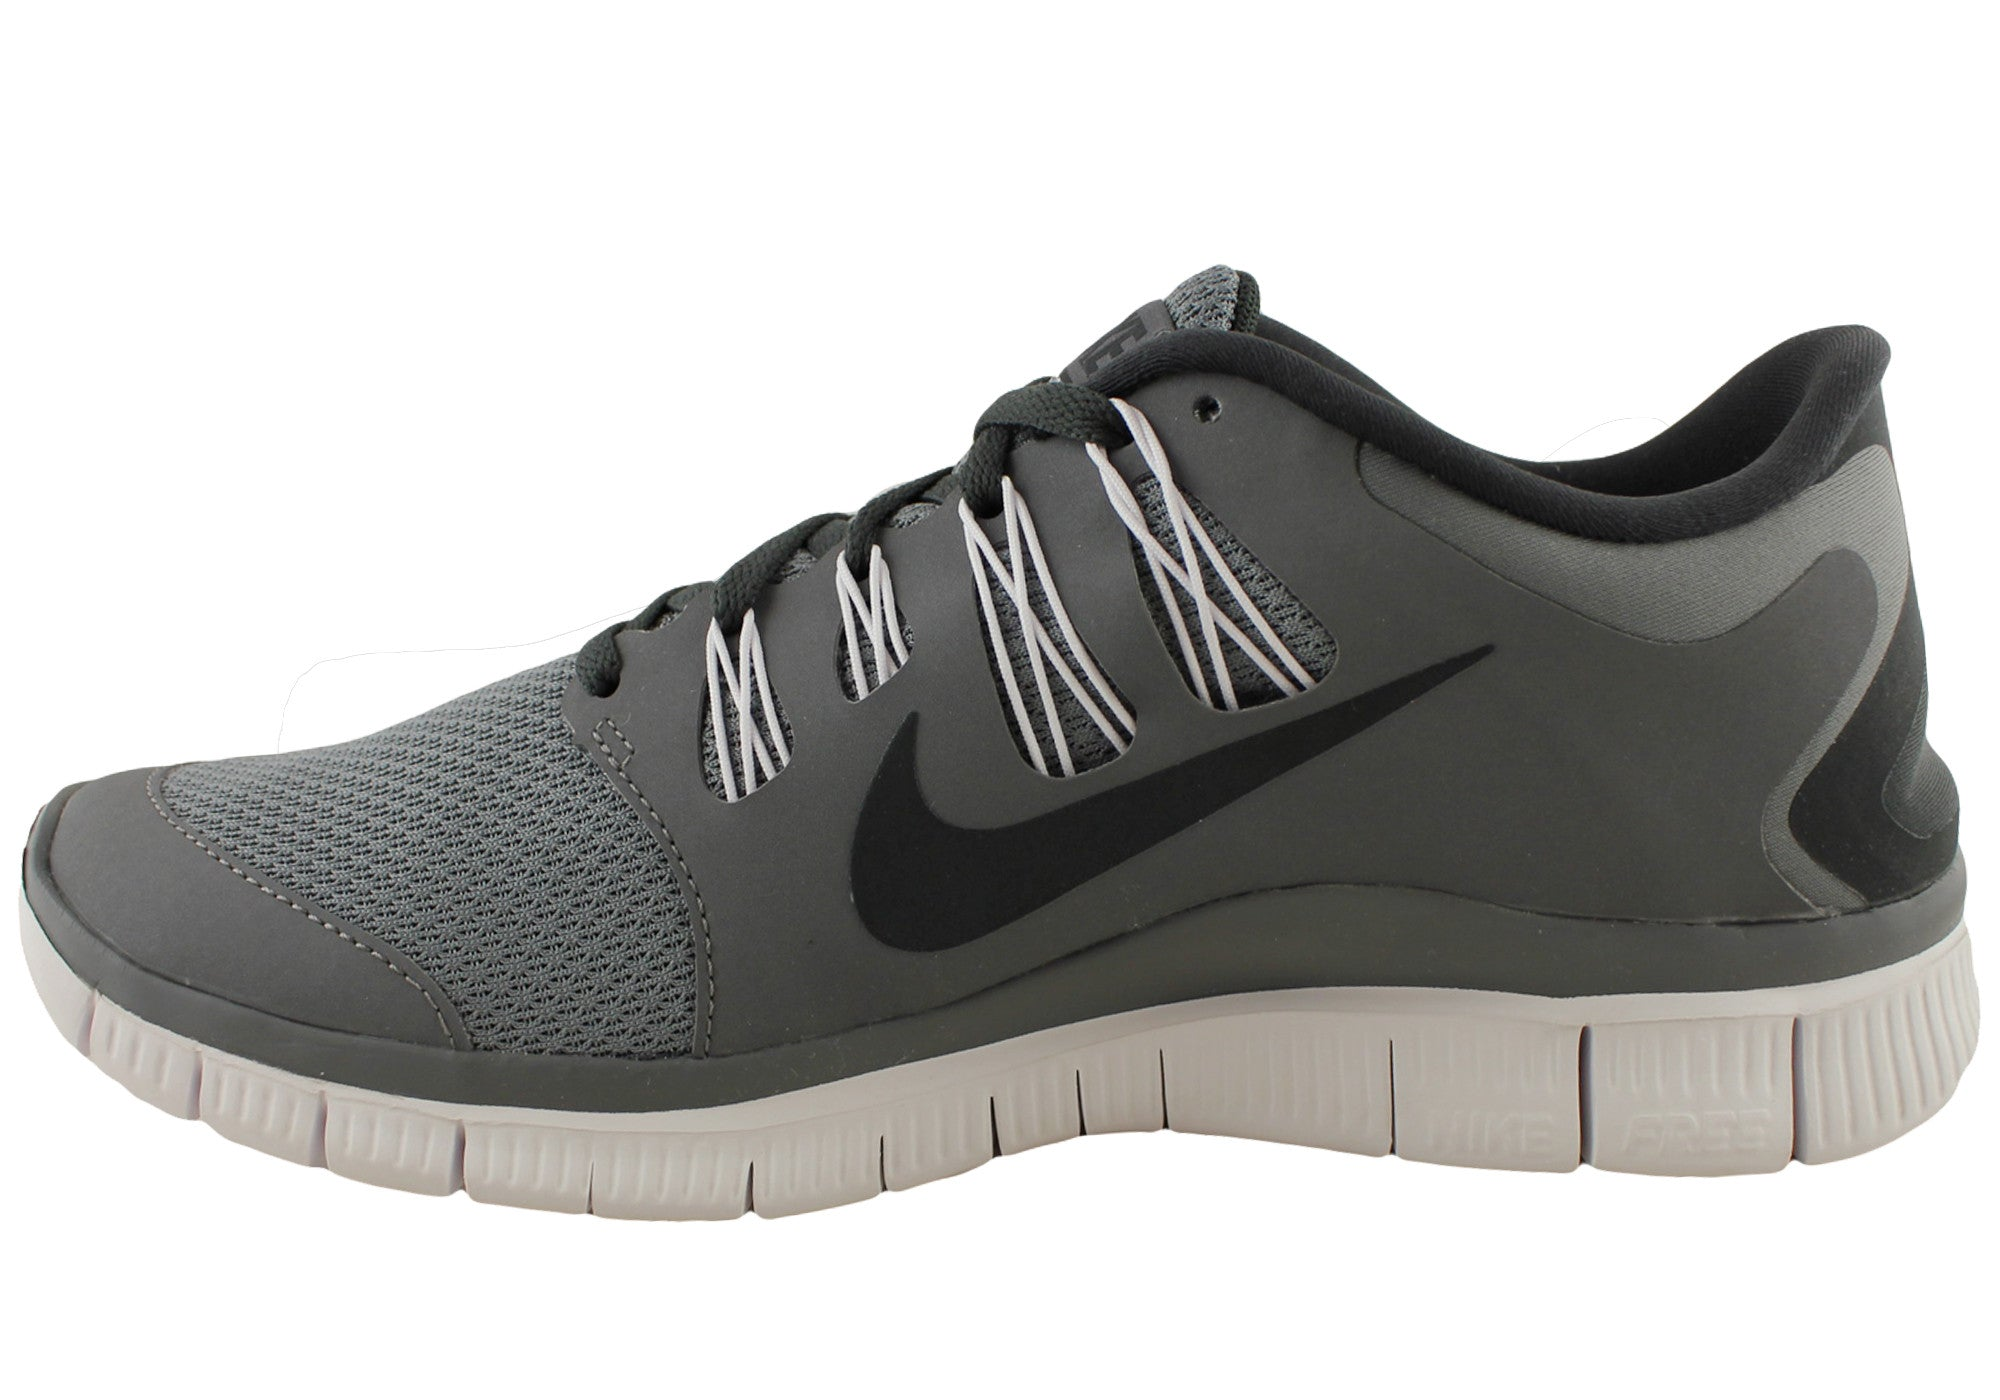 Nike Free 5.0 Mens Running/Sports Cushioned Shoes